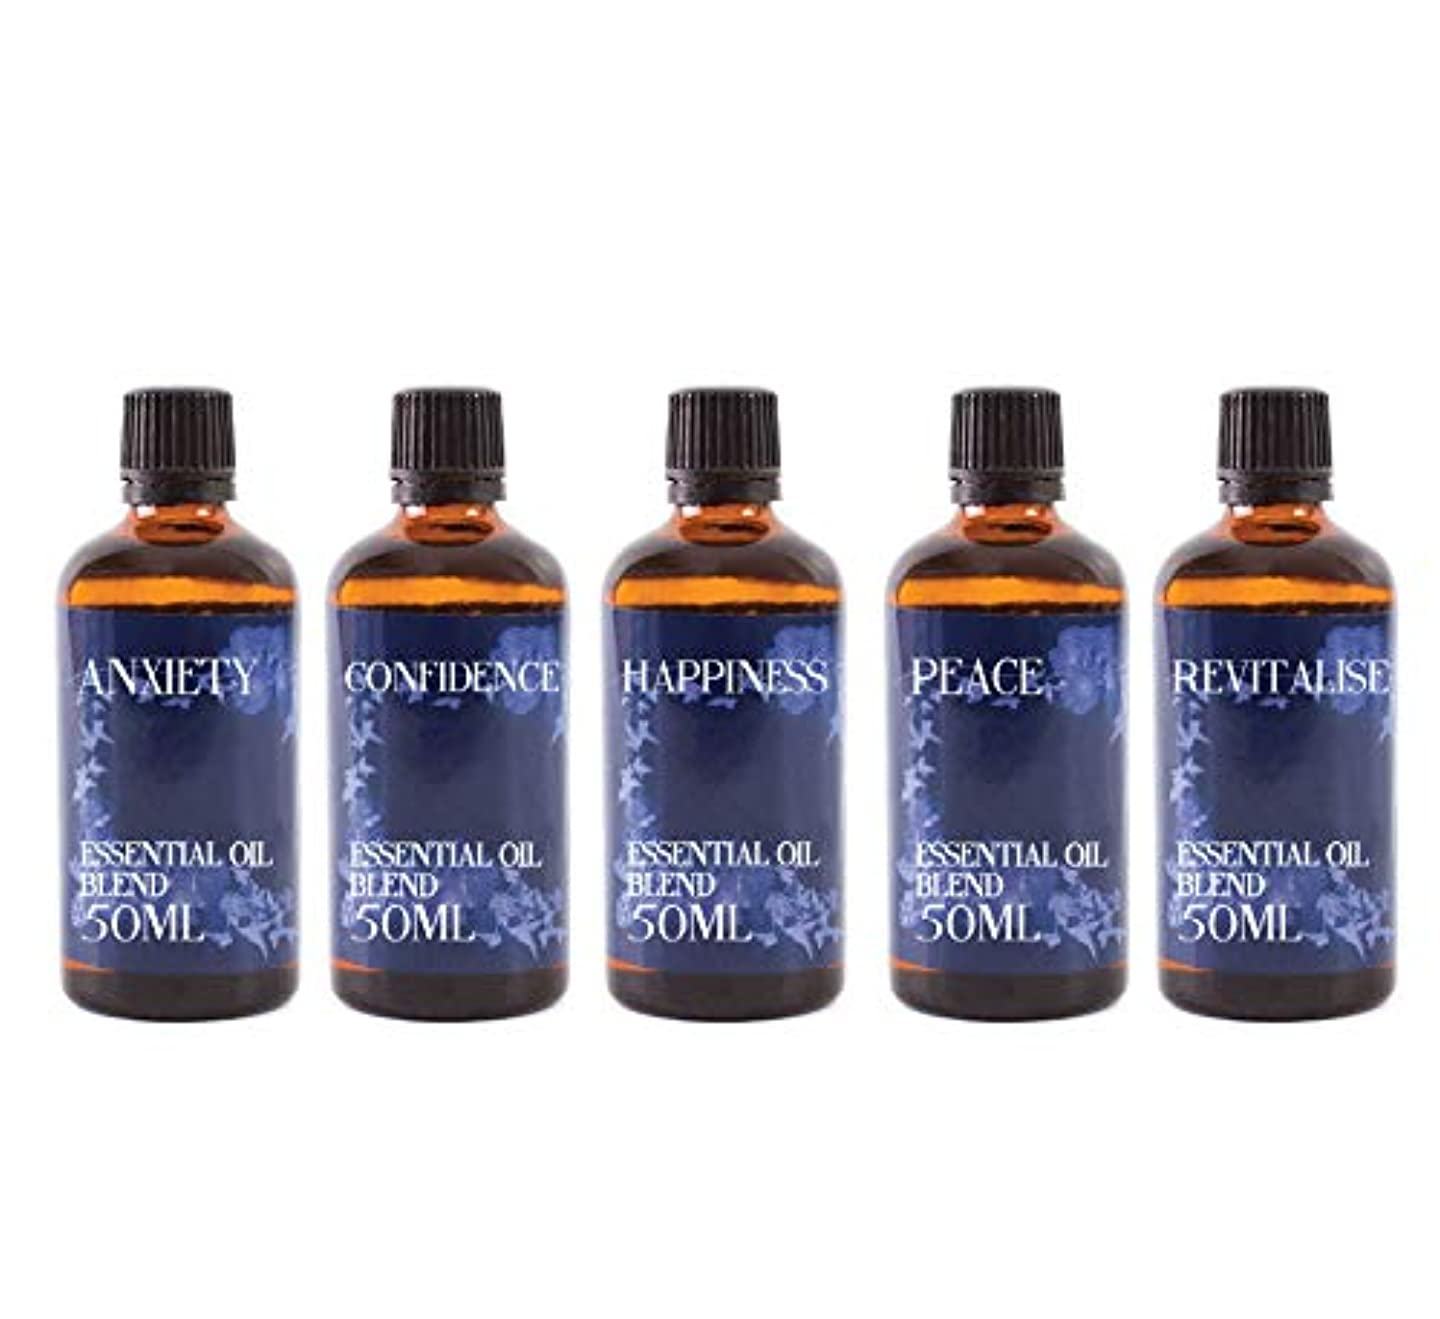 Mystix London | Gift Starter Pack of 5 x 50ml - Mental Wellbeing - Essential Oil Blends